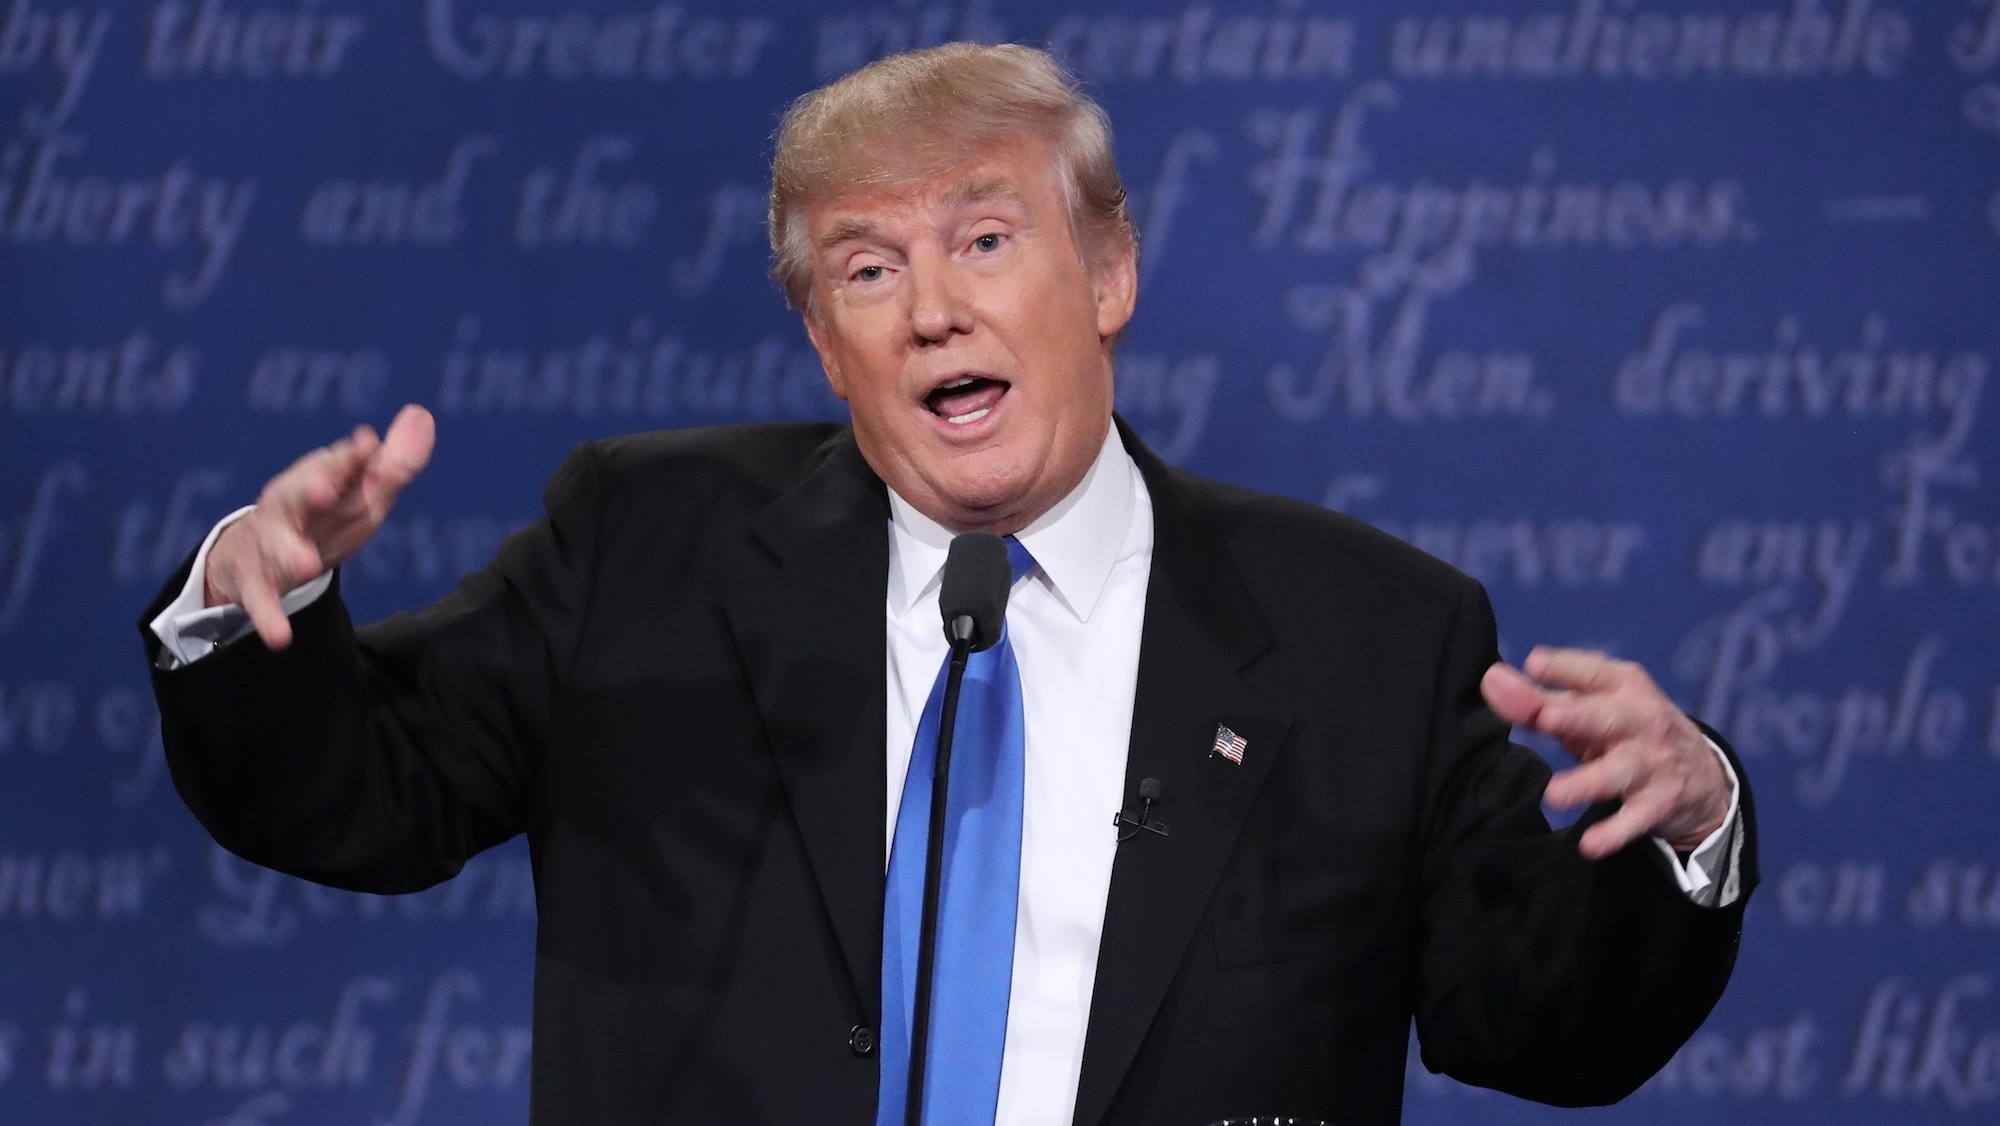 Donald Trump lost the debate on social media